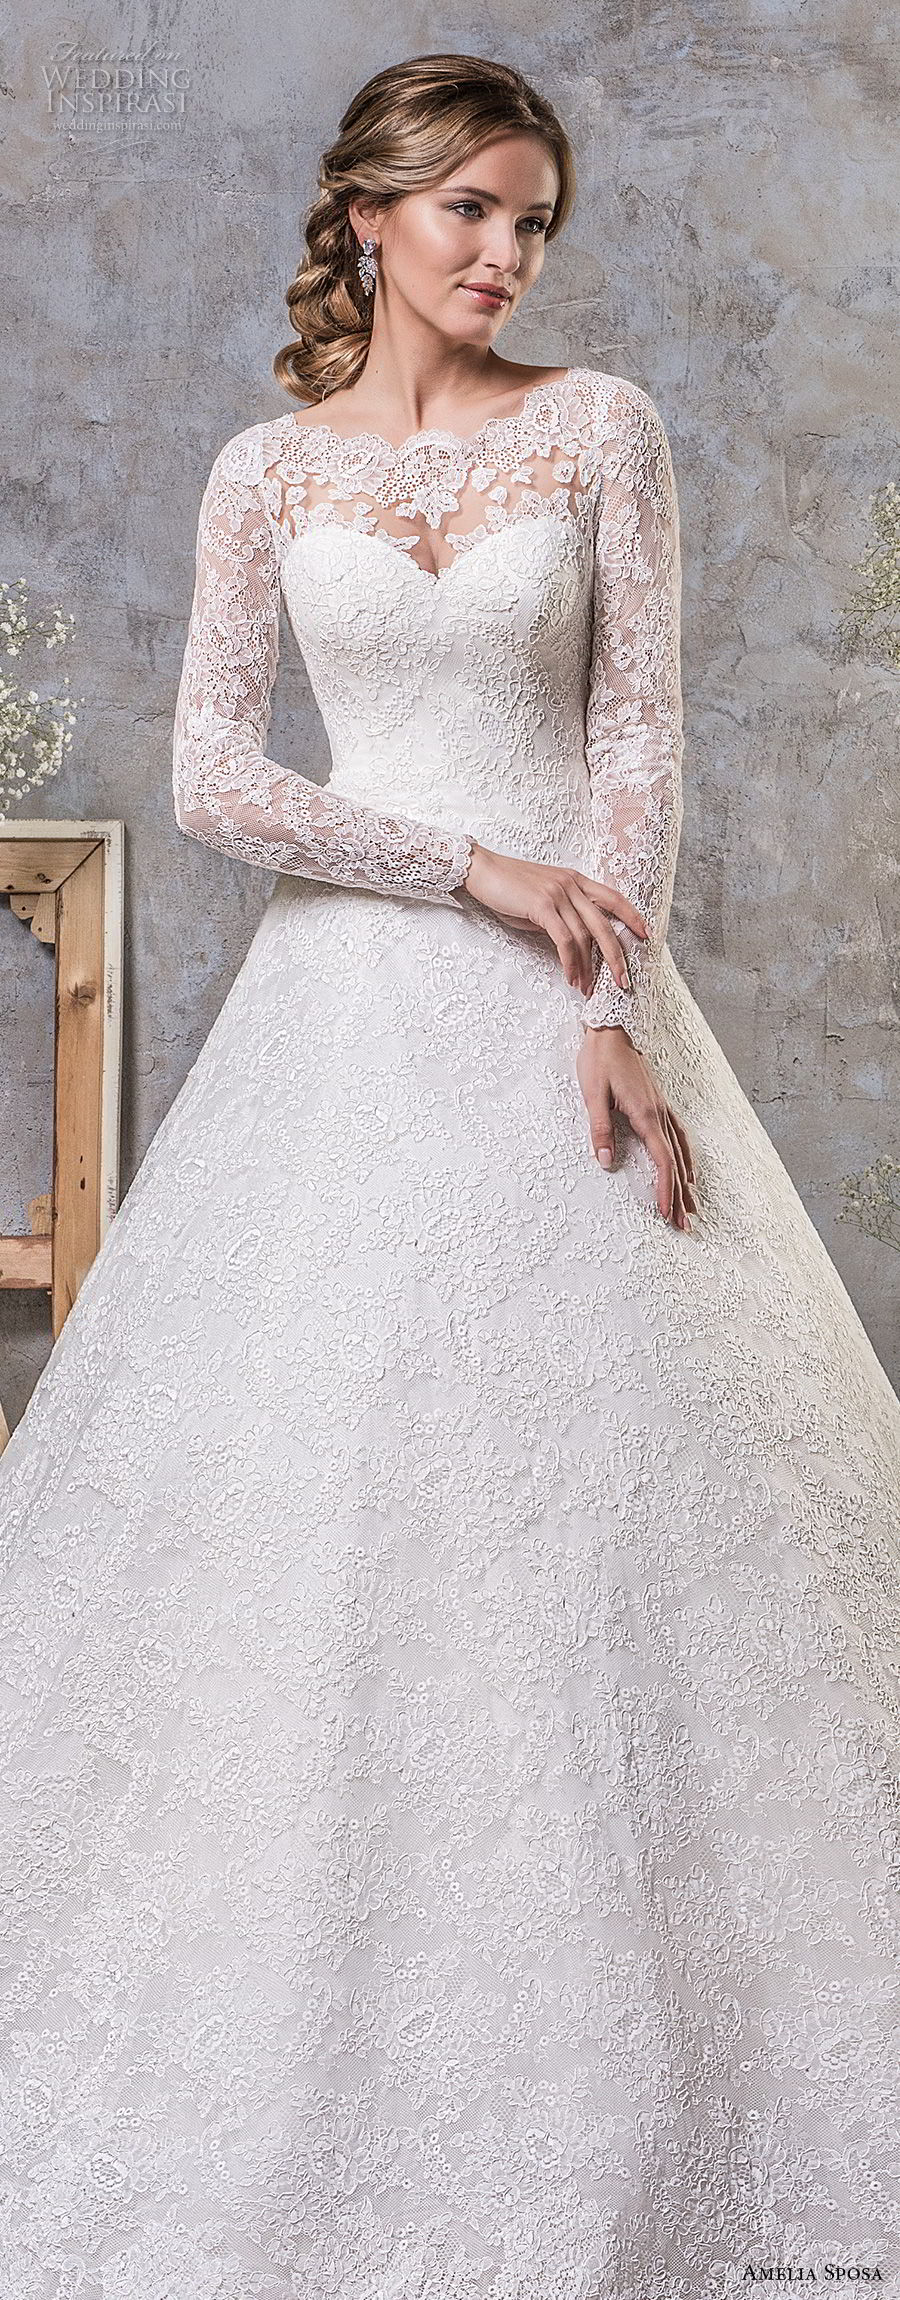 amelia sposa fall 2018 bridal long sleeves illusion jewel sweetheart neckline full embellishment elegant princess a line wedding dress lace back chapel train (17) mv